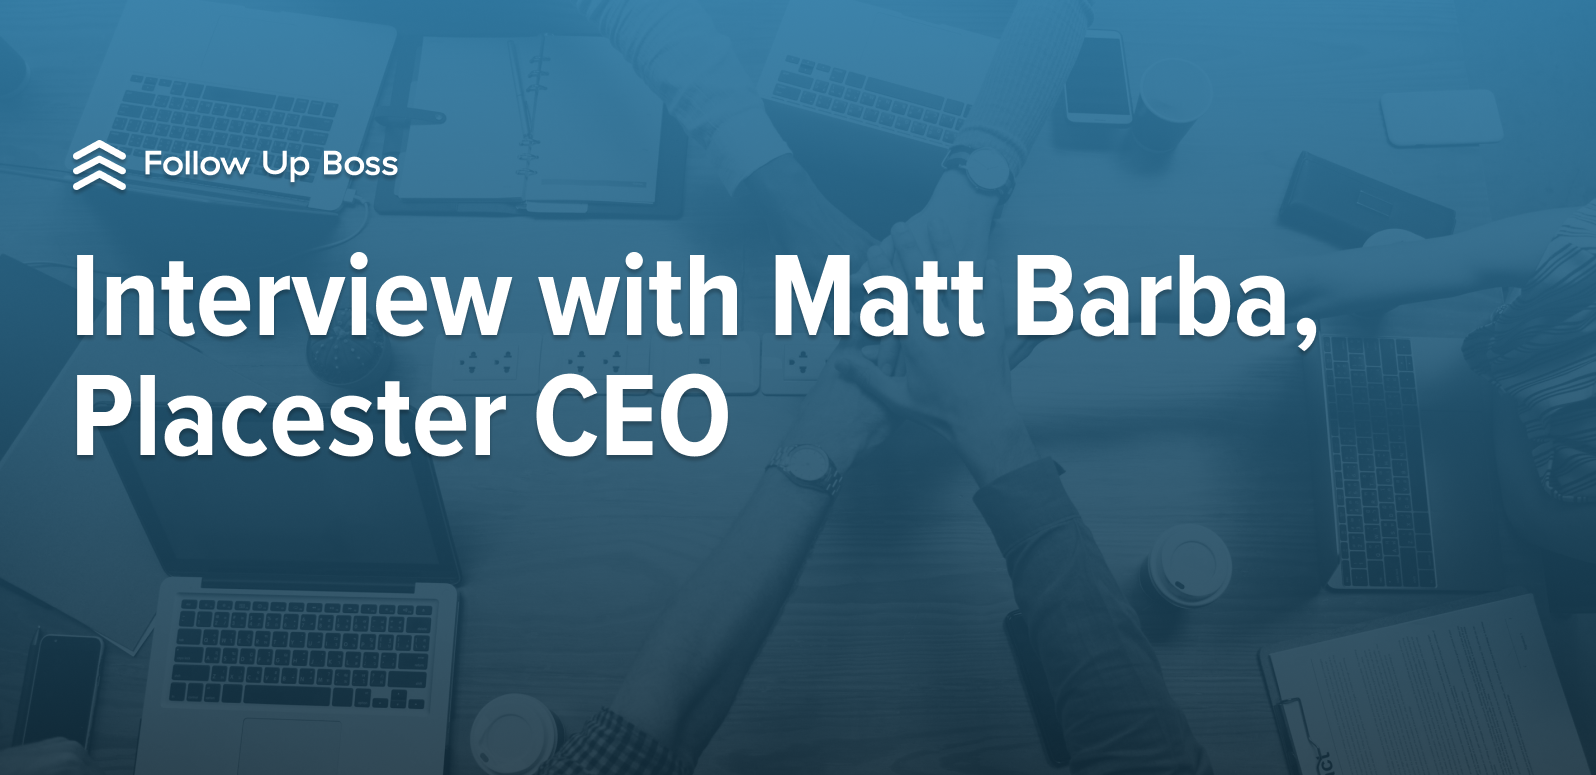 Interview with Matt Barba, Placester CEO